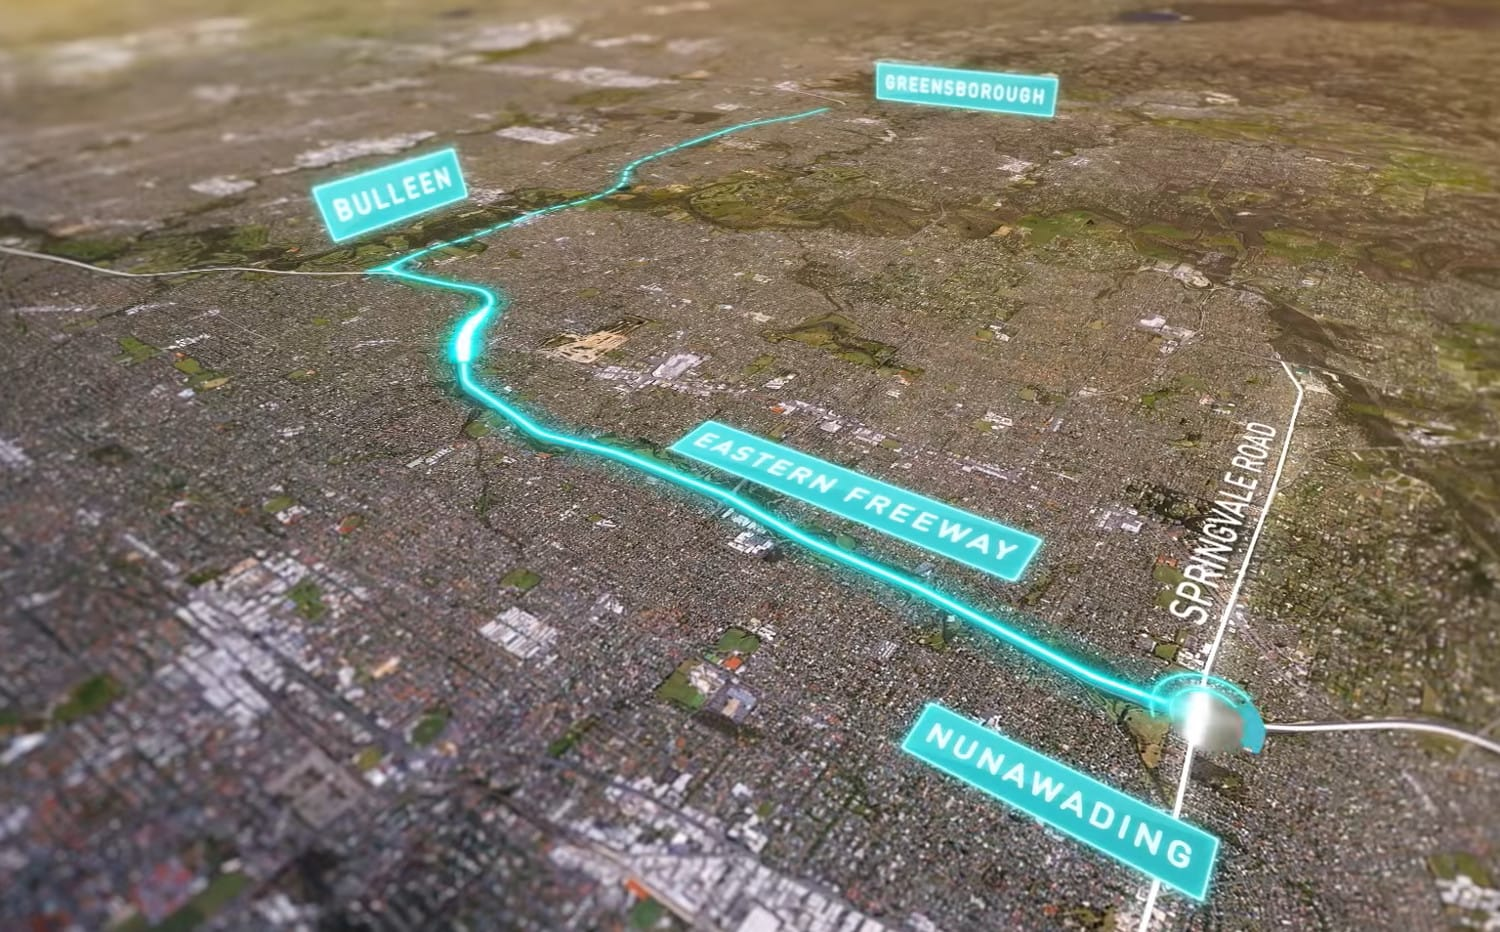 'Melbourne's poor orbital connectivity is constraining the economic potential of Victoria'